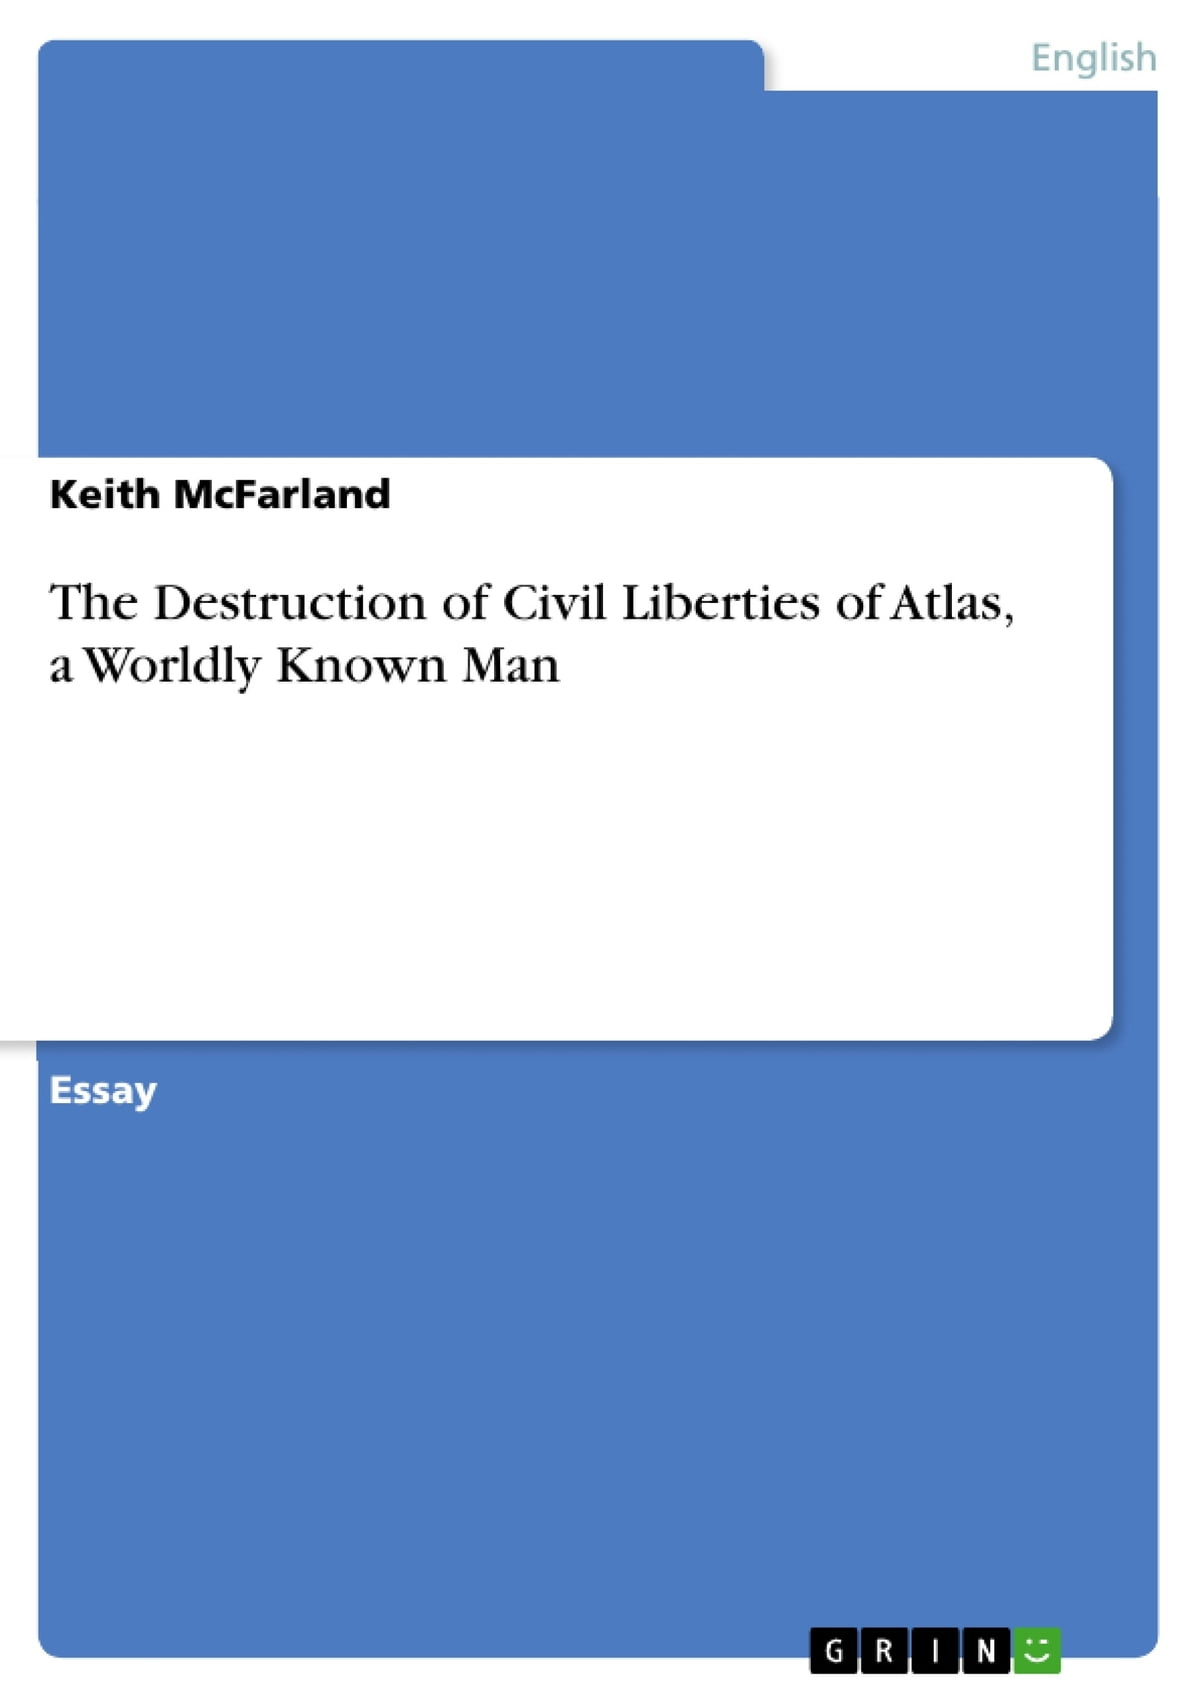 Movie Review Essays The Destruction Of Civil Liberties Of Atlas A Worldly Known Man Ebook By  Keith Mcfarland    Rakuten Kobo The Adventures Of Huckleberry Finn Analysis Essay also Personal Experience Essay The Destruction Of Civil Liberties Of Atlas A Worldly Known Man  Essay On Indian Republic Day